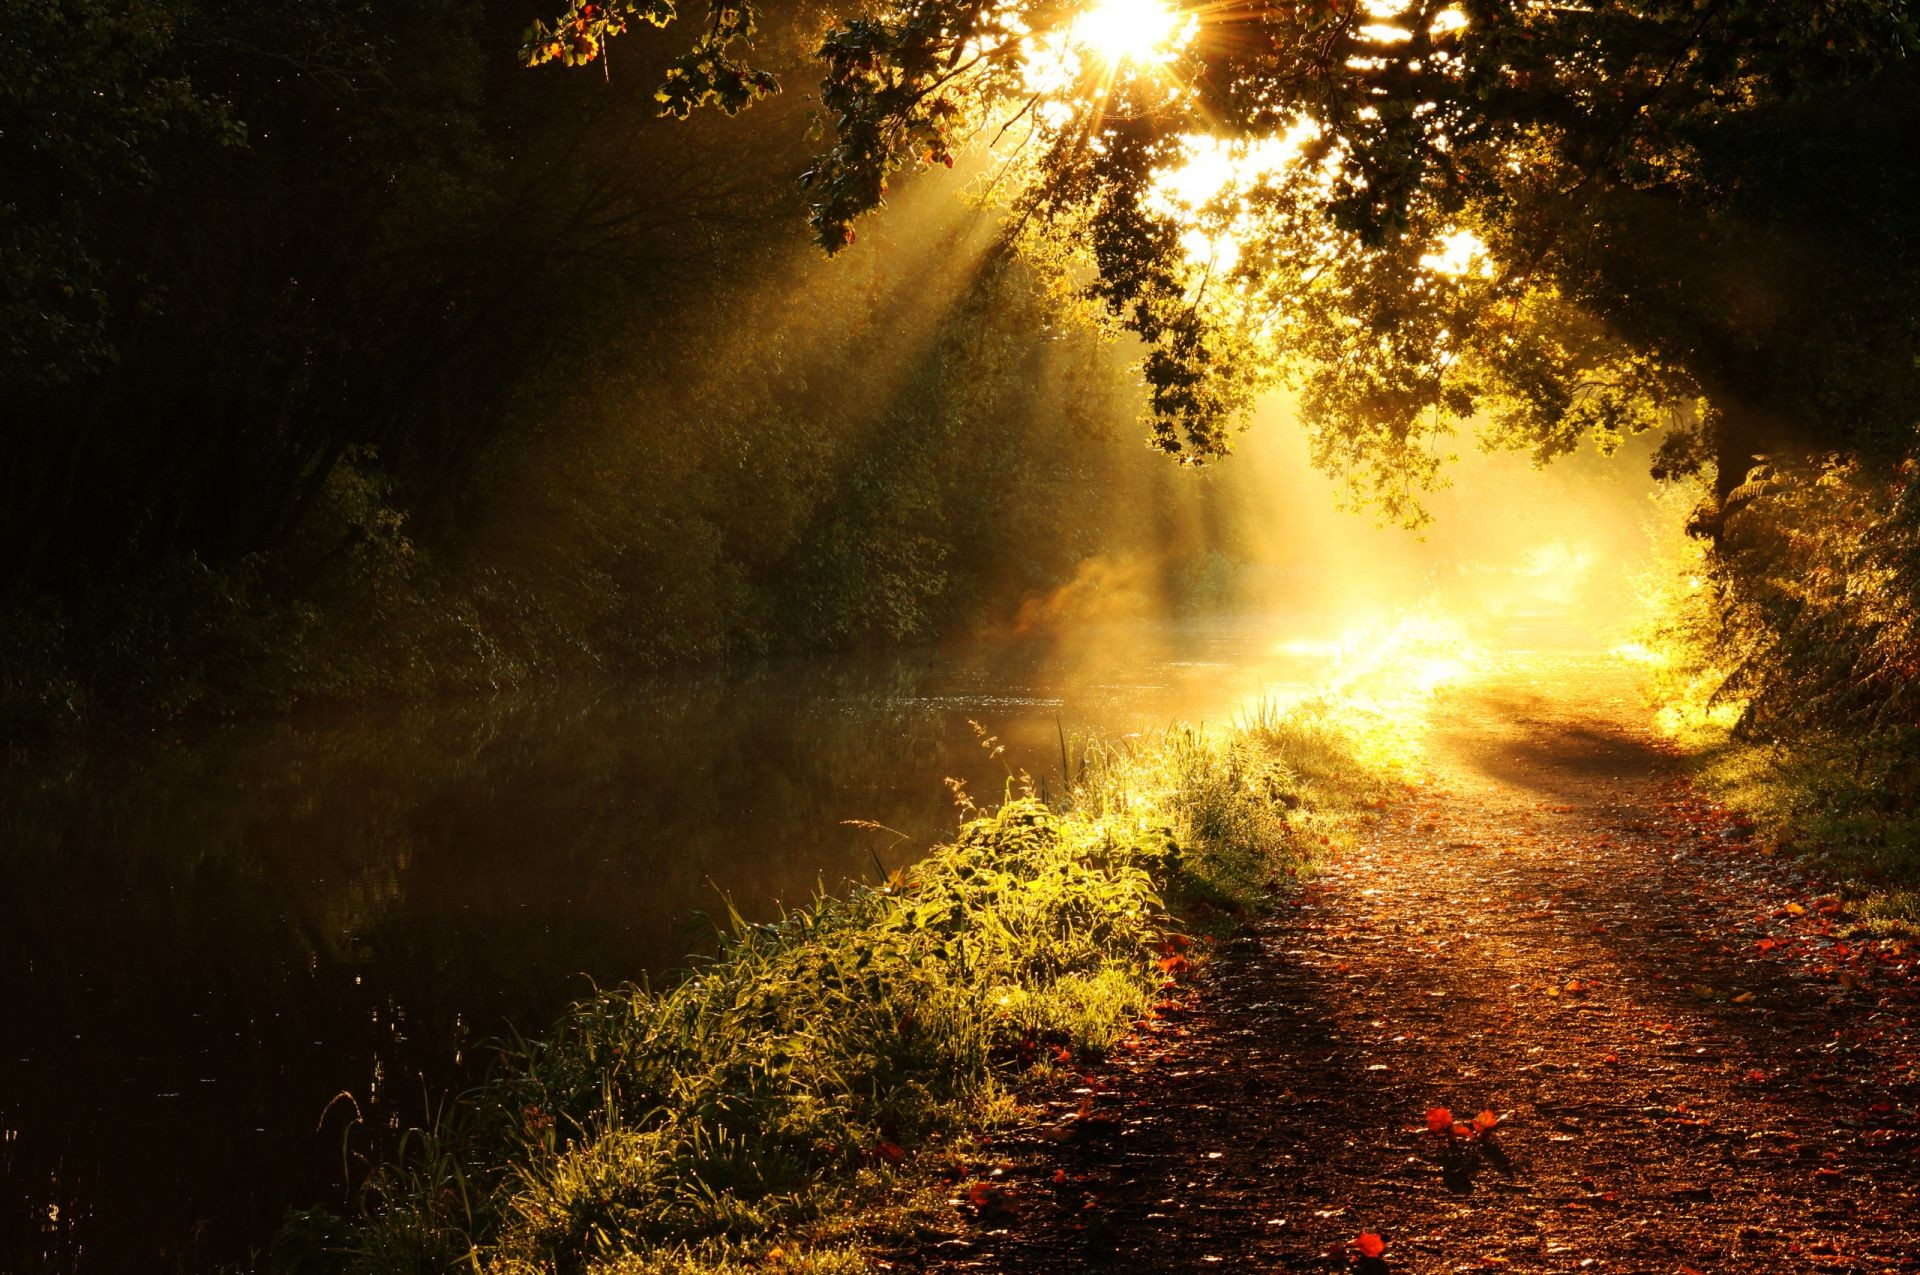 the sunset and sunrise landscape fog dawn sun nature tree outdoors mist sunset light fall